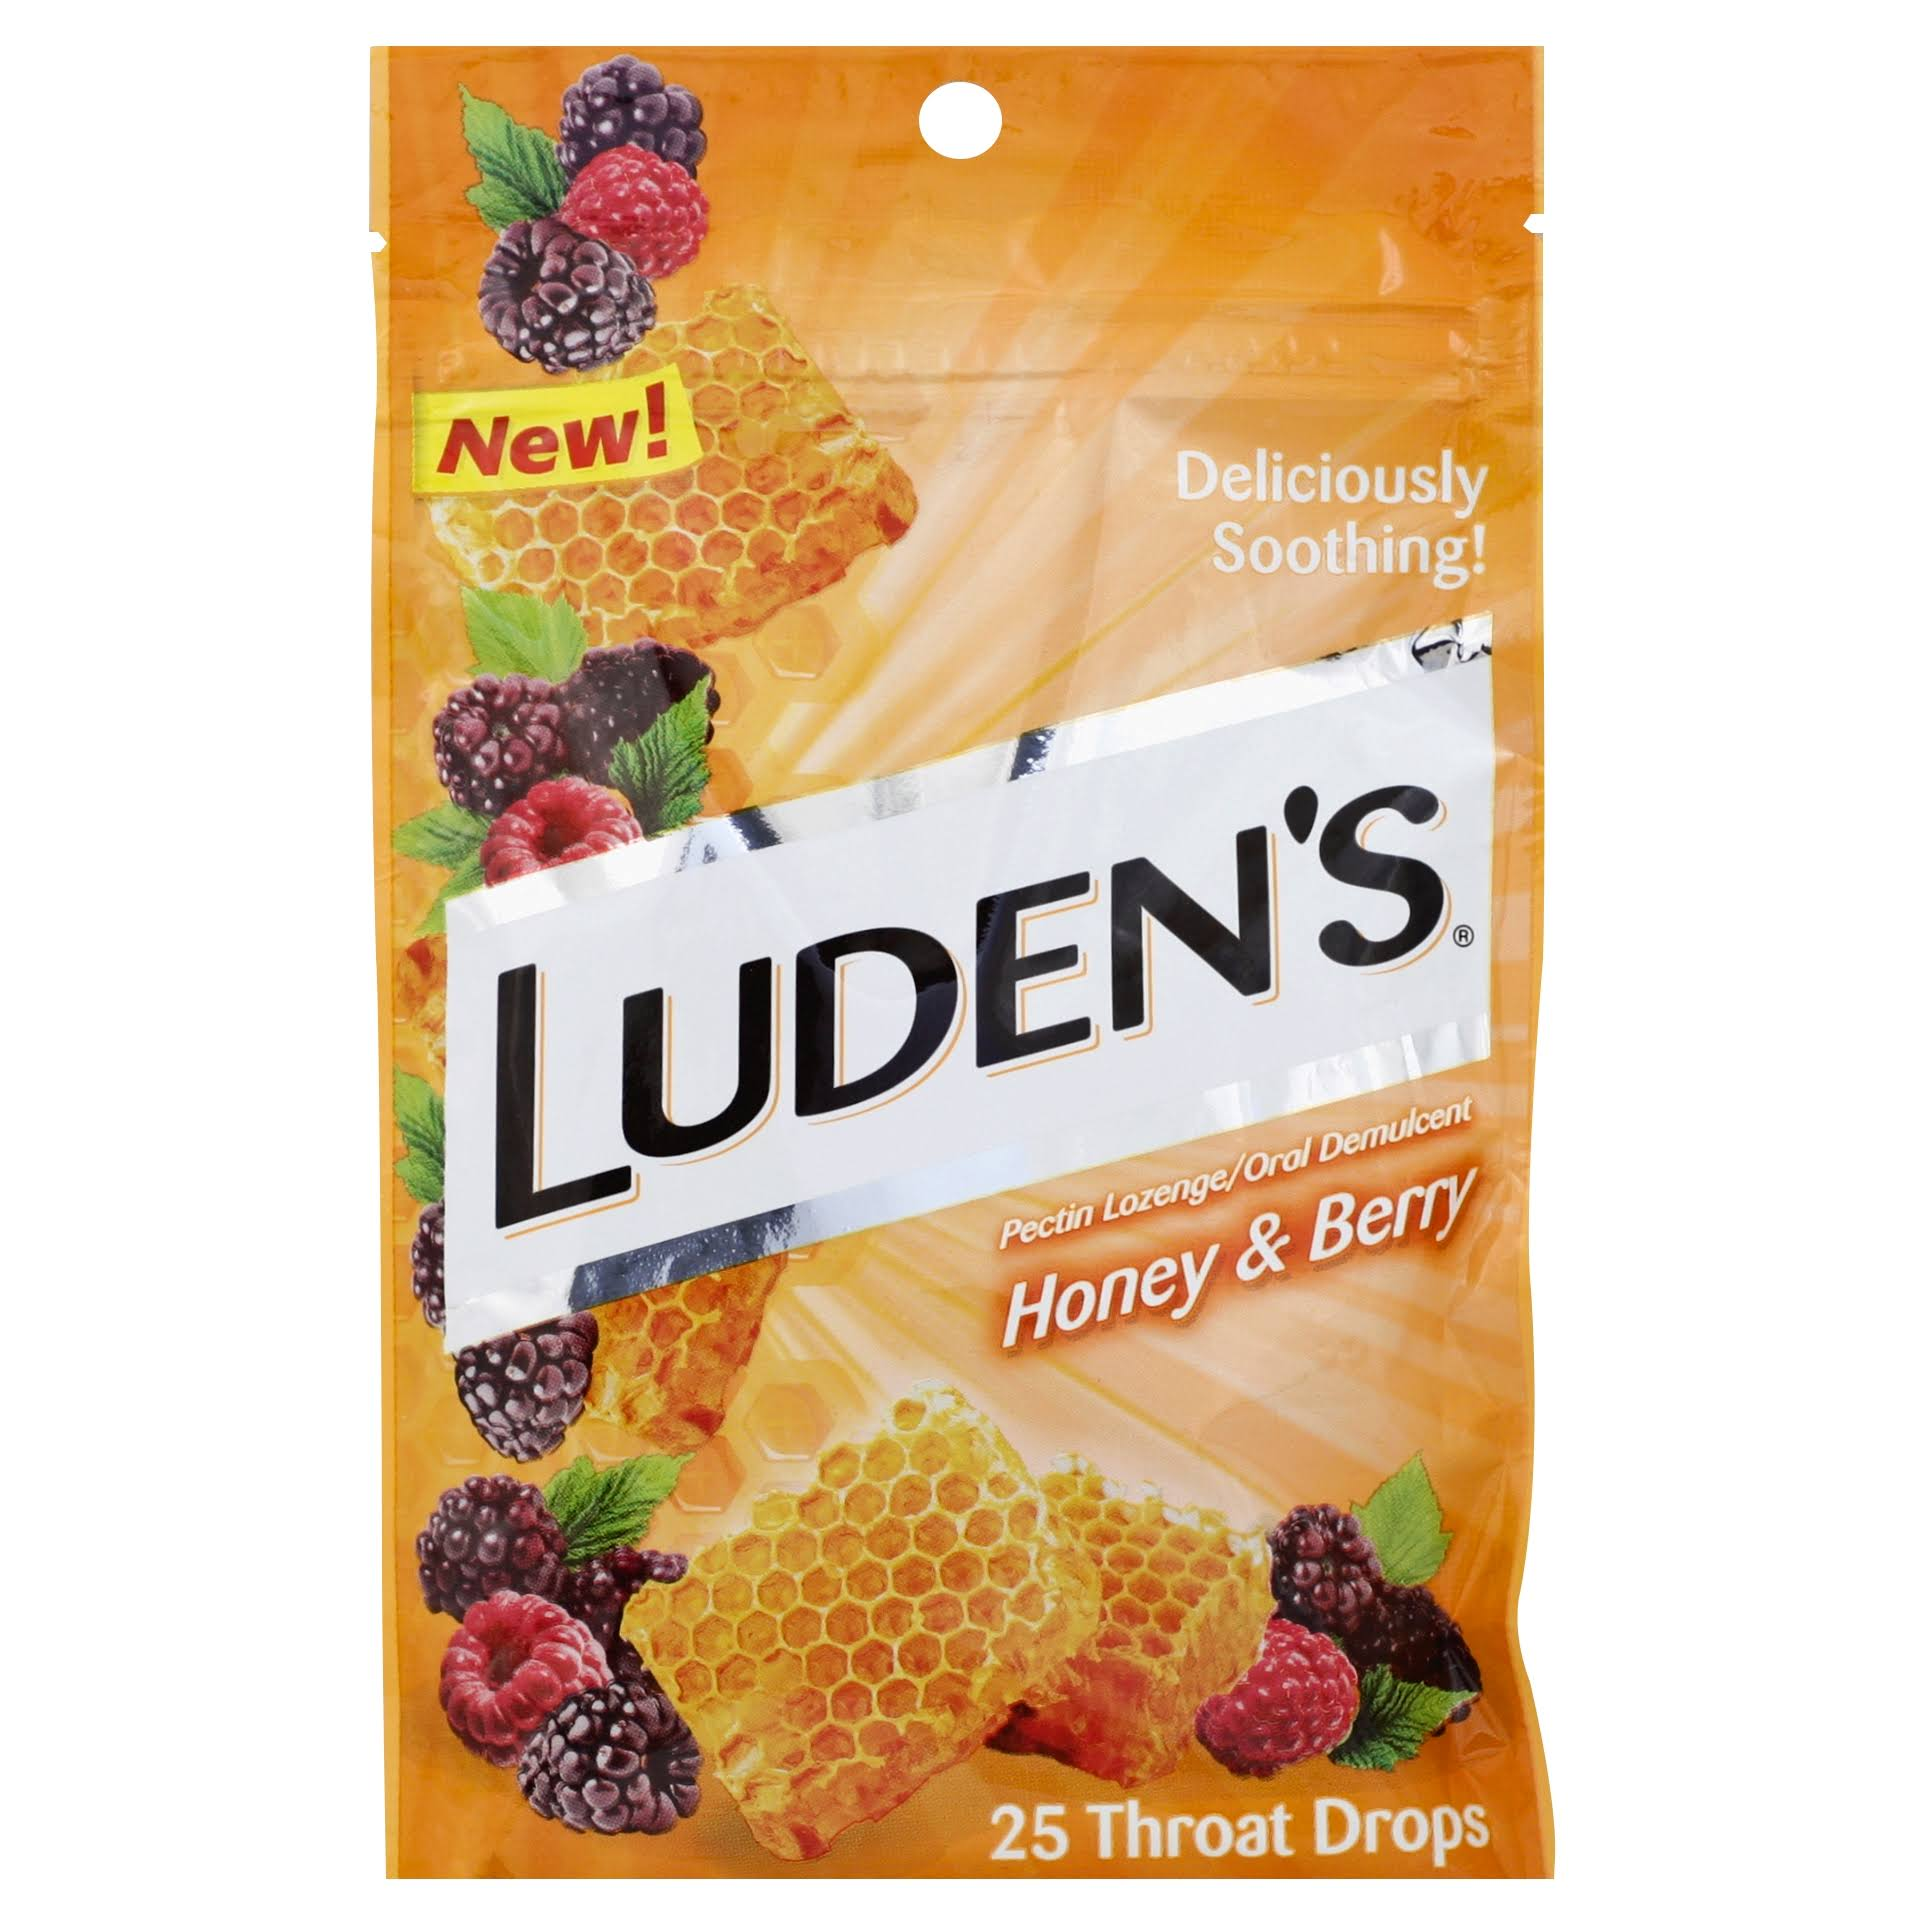 Ludens Throat Drops, Honey & Berry - 25 throat drops